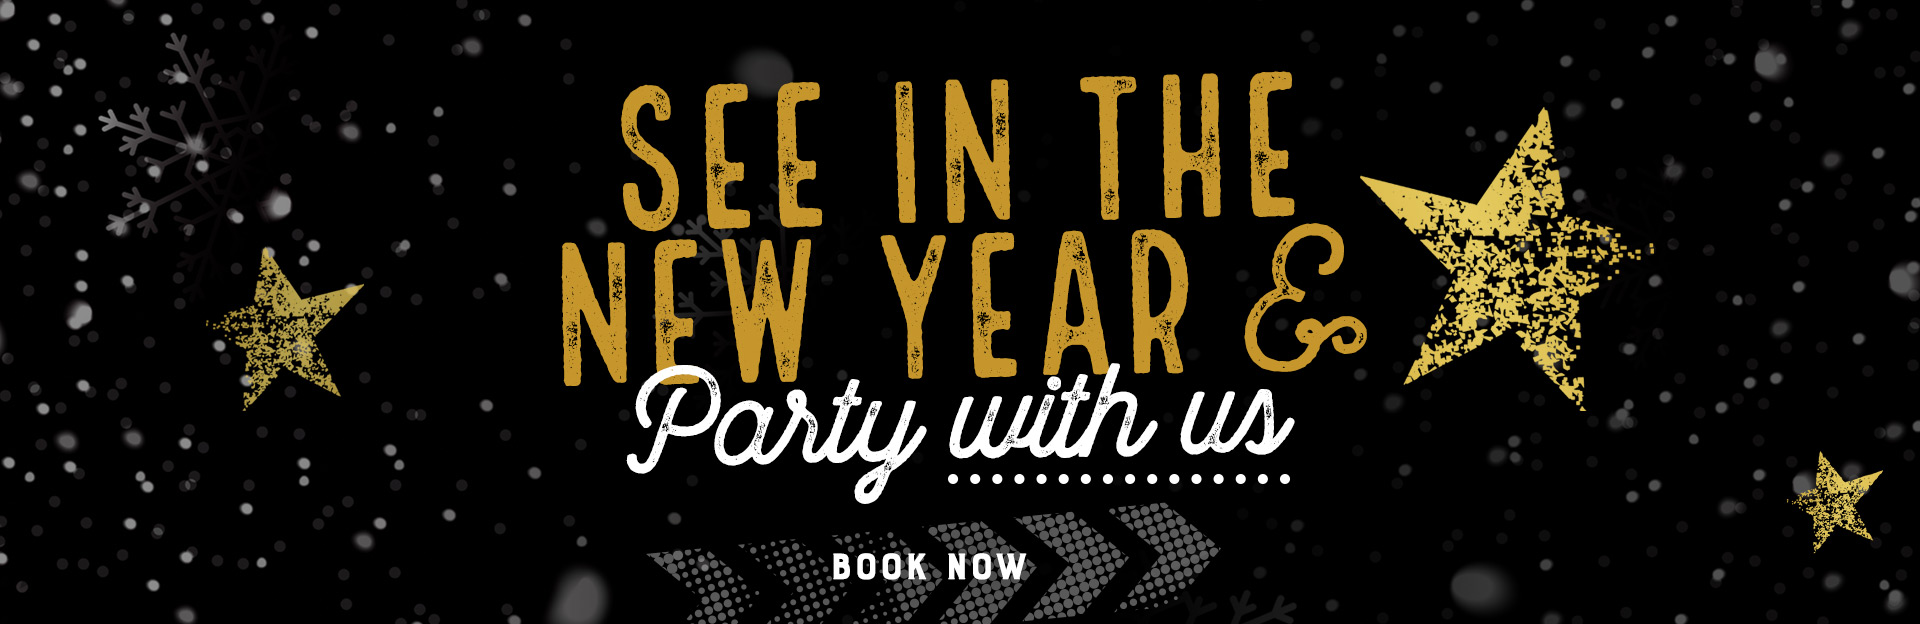 Book now to see in the new year and party with us